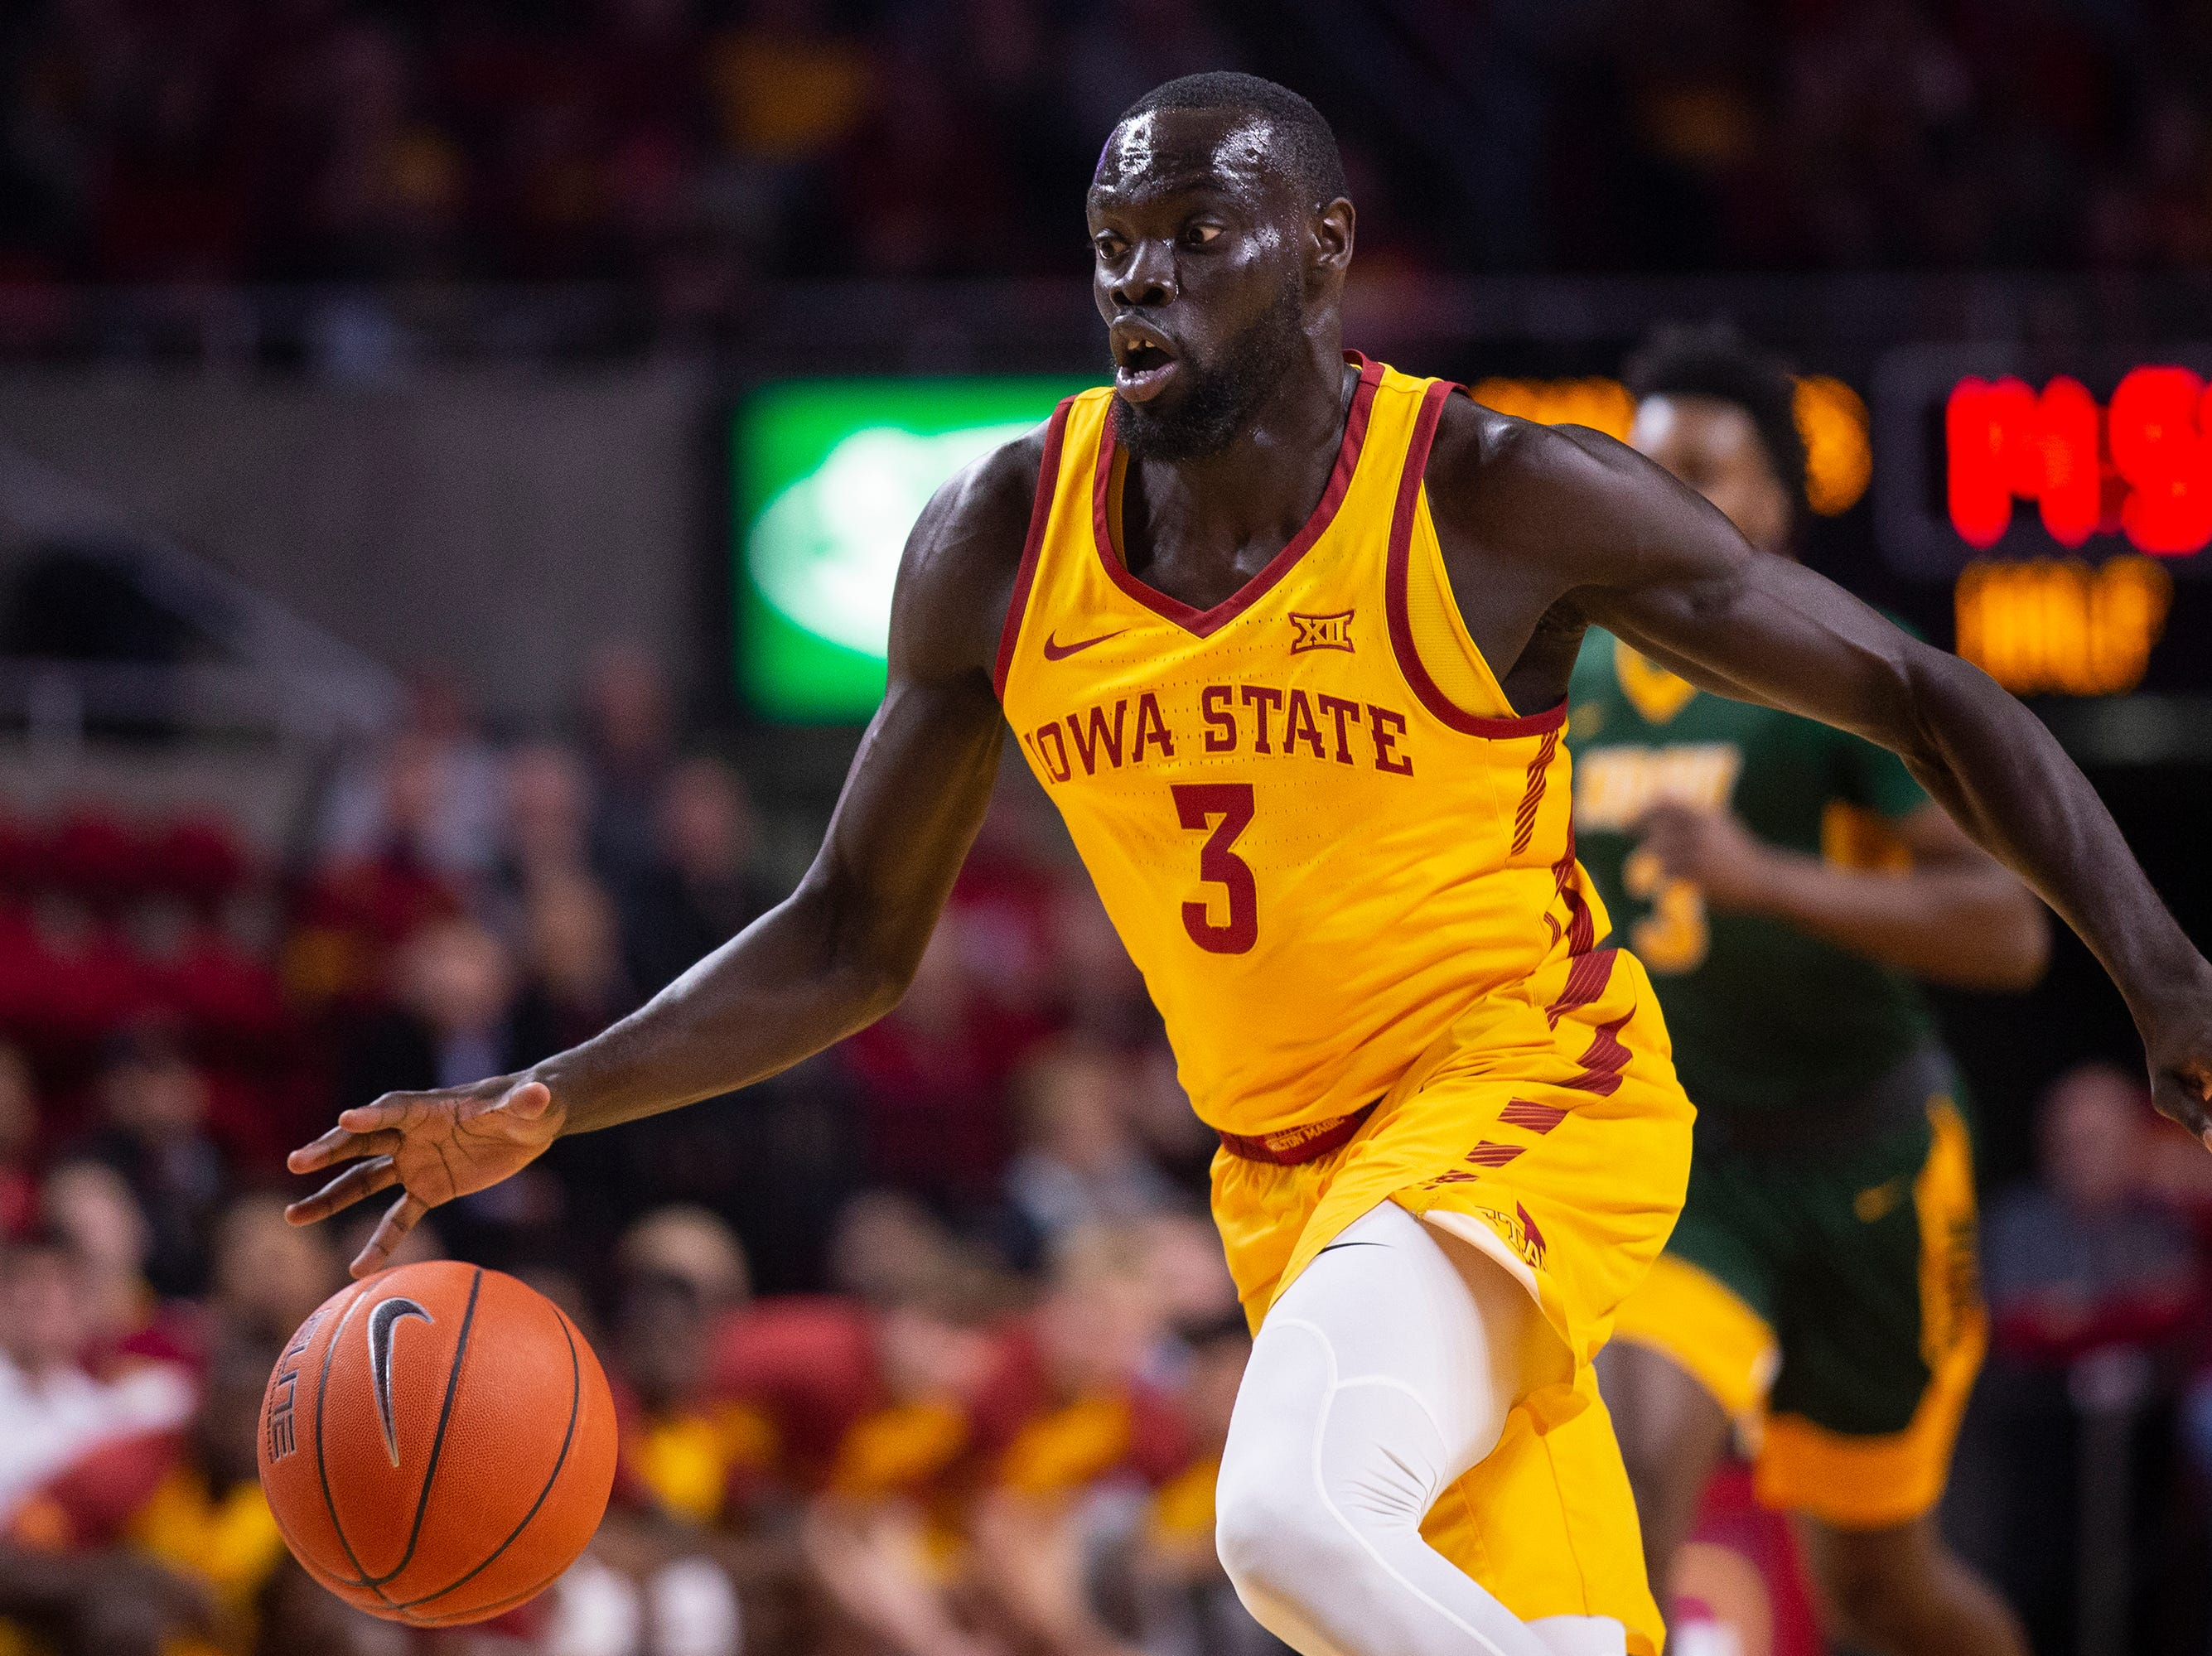 Iowa State's Marial Shayok brings the ball down the court during the Iowa State men's basketball game against North Dakota State University on Monday, Dec. 3, 2018, in Hilton Coliseum.